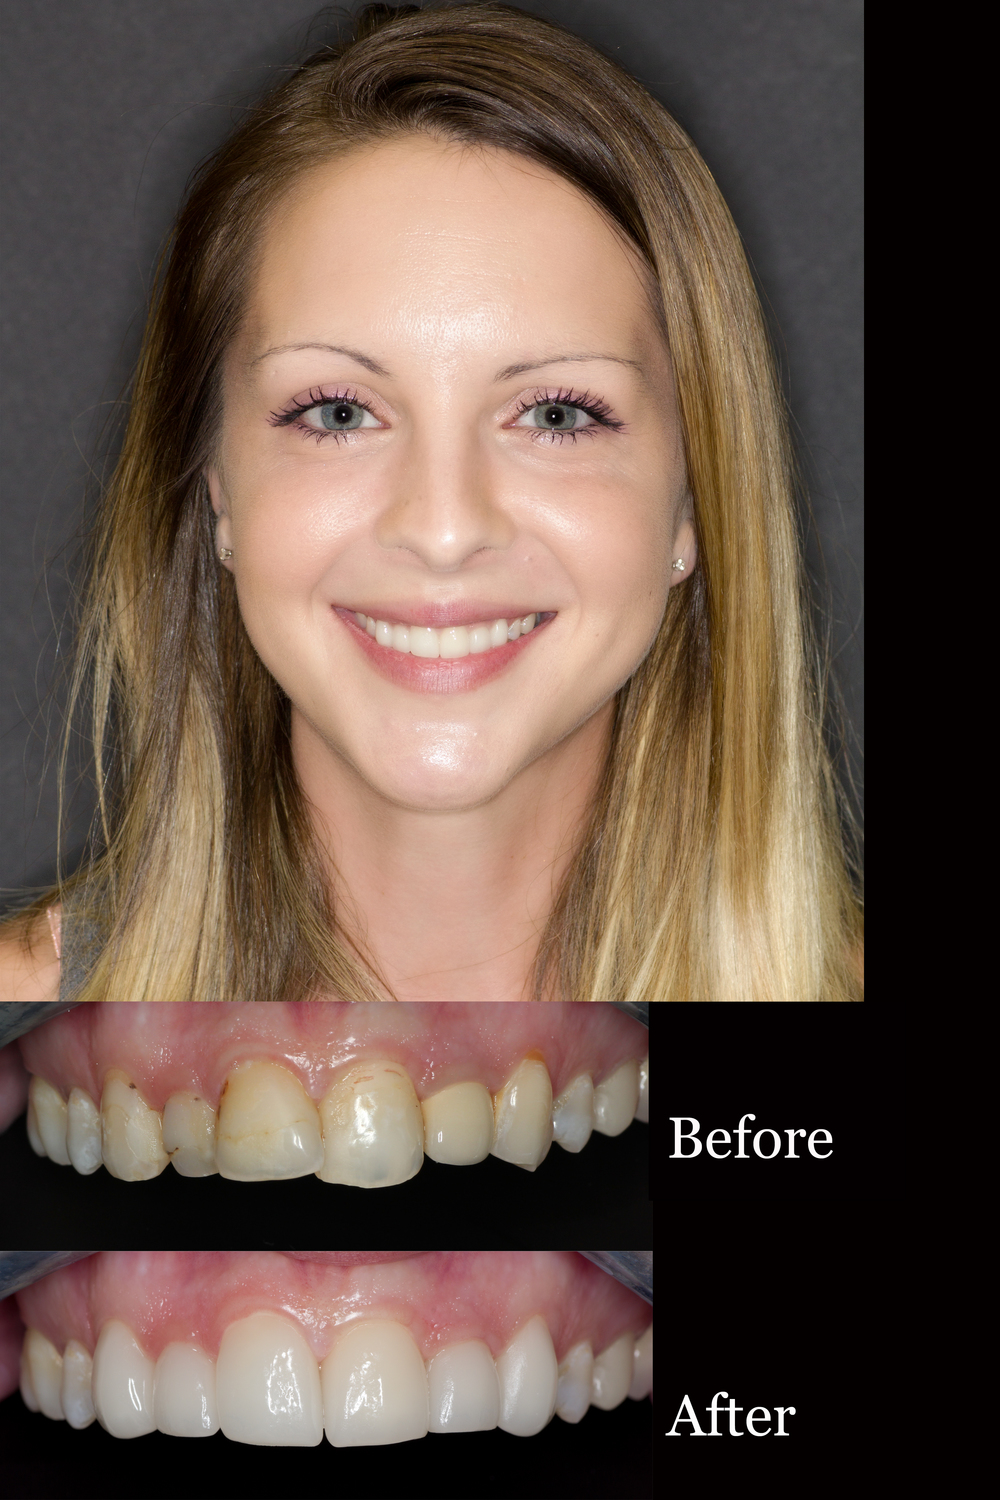 Smile Makeover Oneday Honolulu Best Dentist